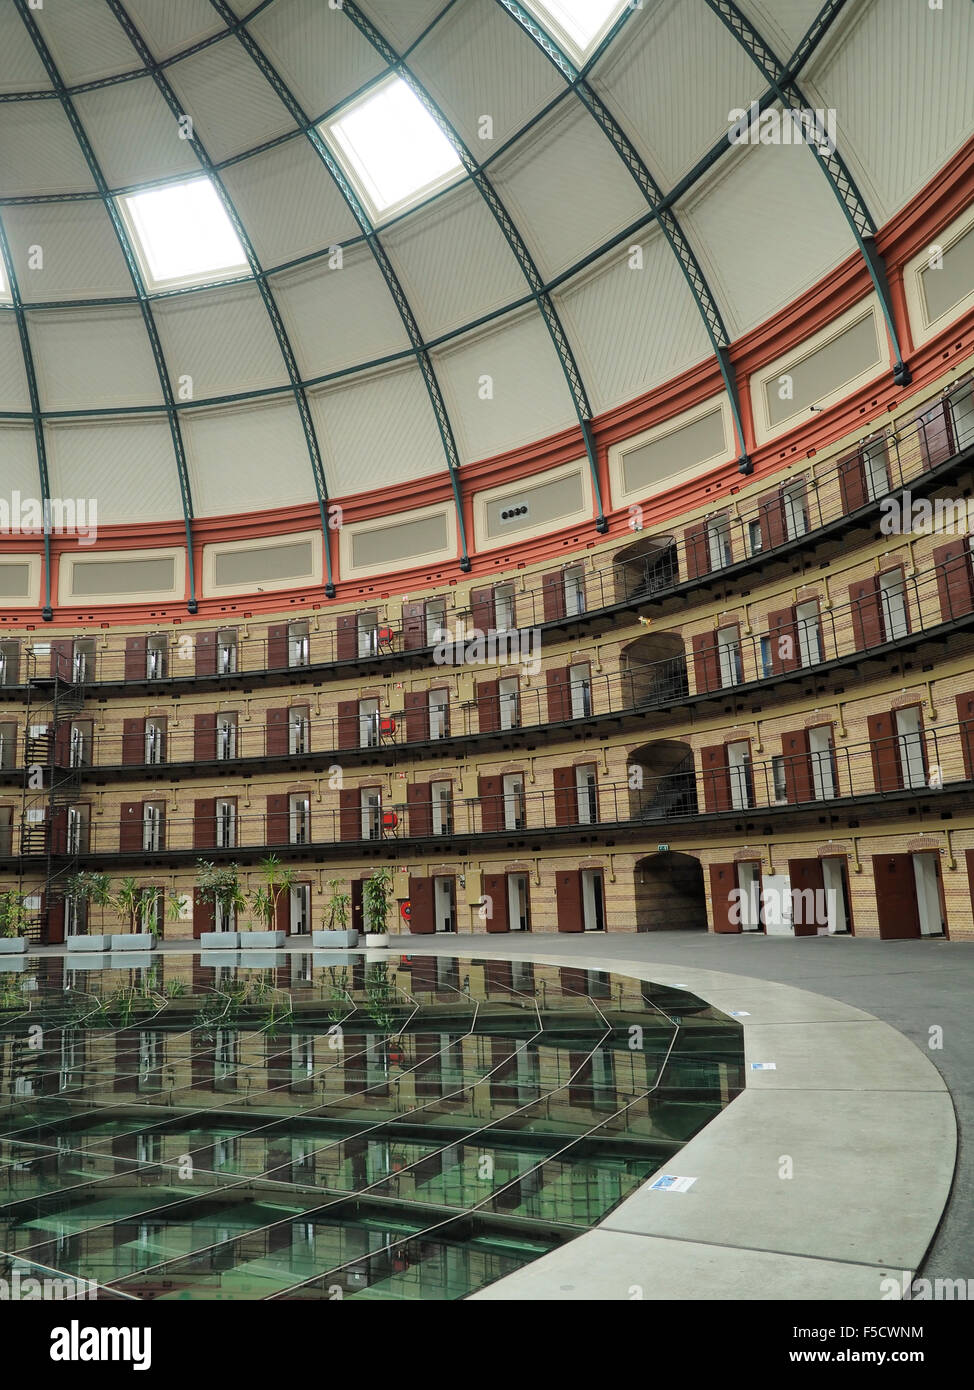 Interior of the round dome prison koepelgevangenis in Breda, the Netherlands, with open cell doors. The prison was - Stock Image